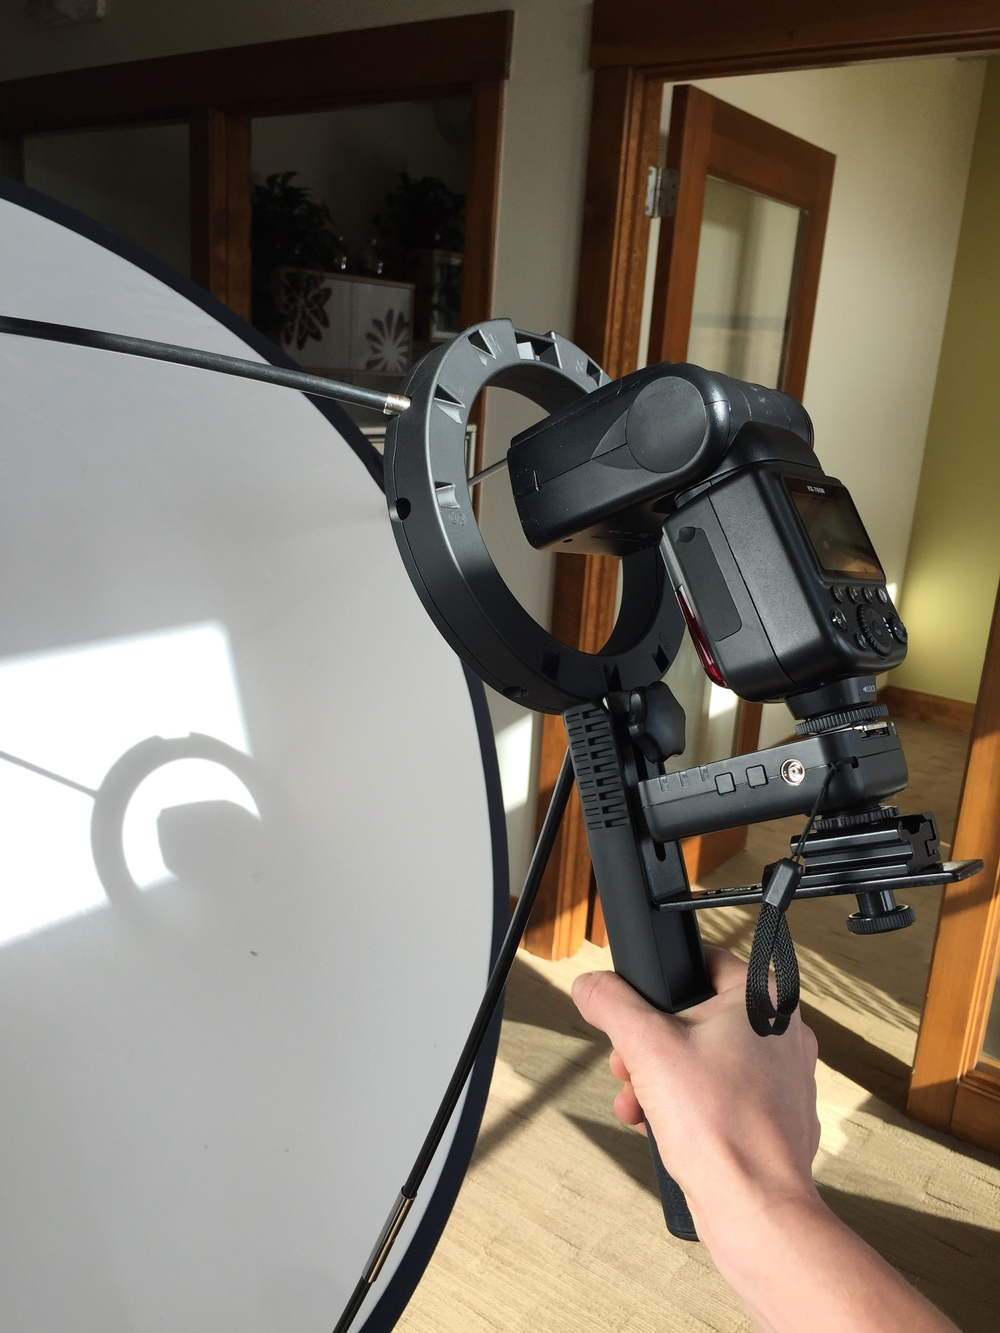 The yongnuo transceiver holds a BOLT flash unit on the Westcott Lunagrip flash diffuser.